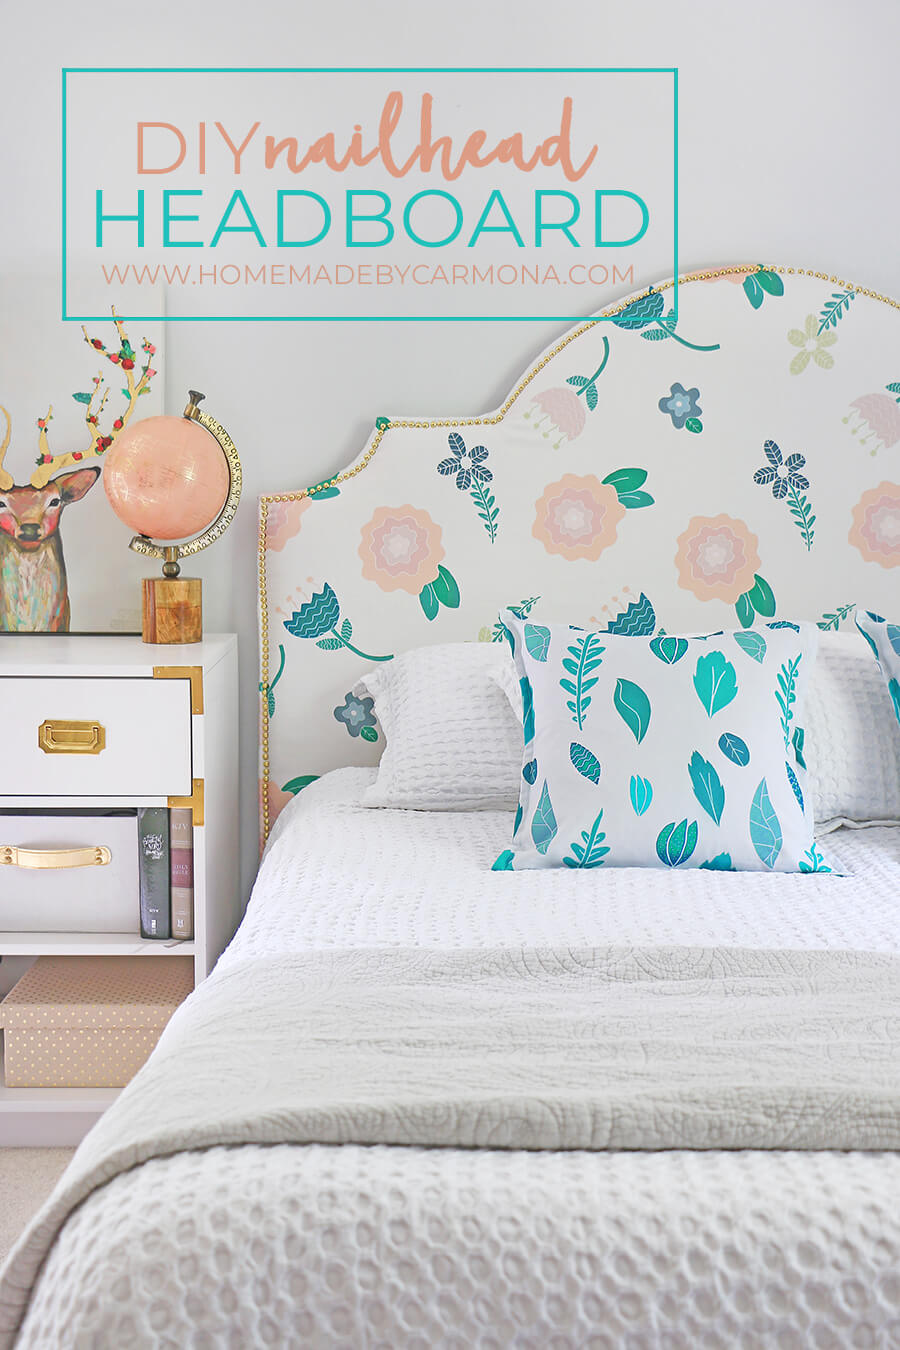 DIY-Nailhead-Headboard